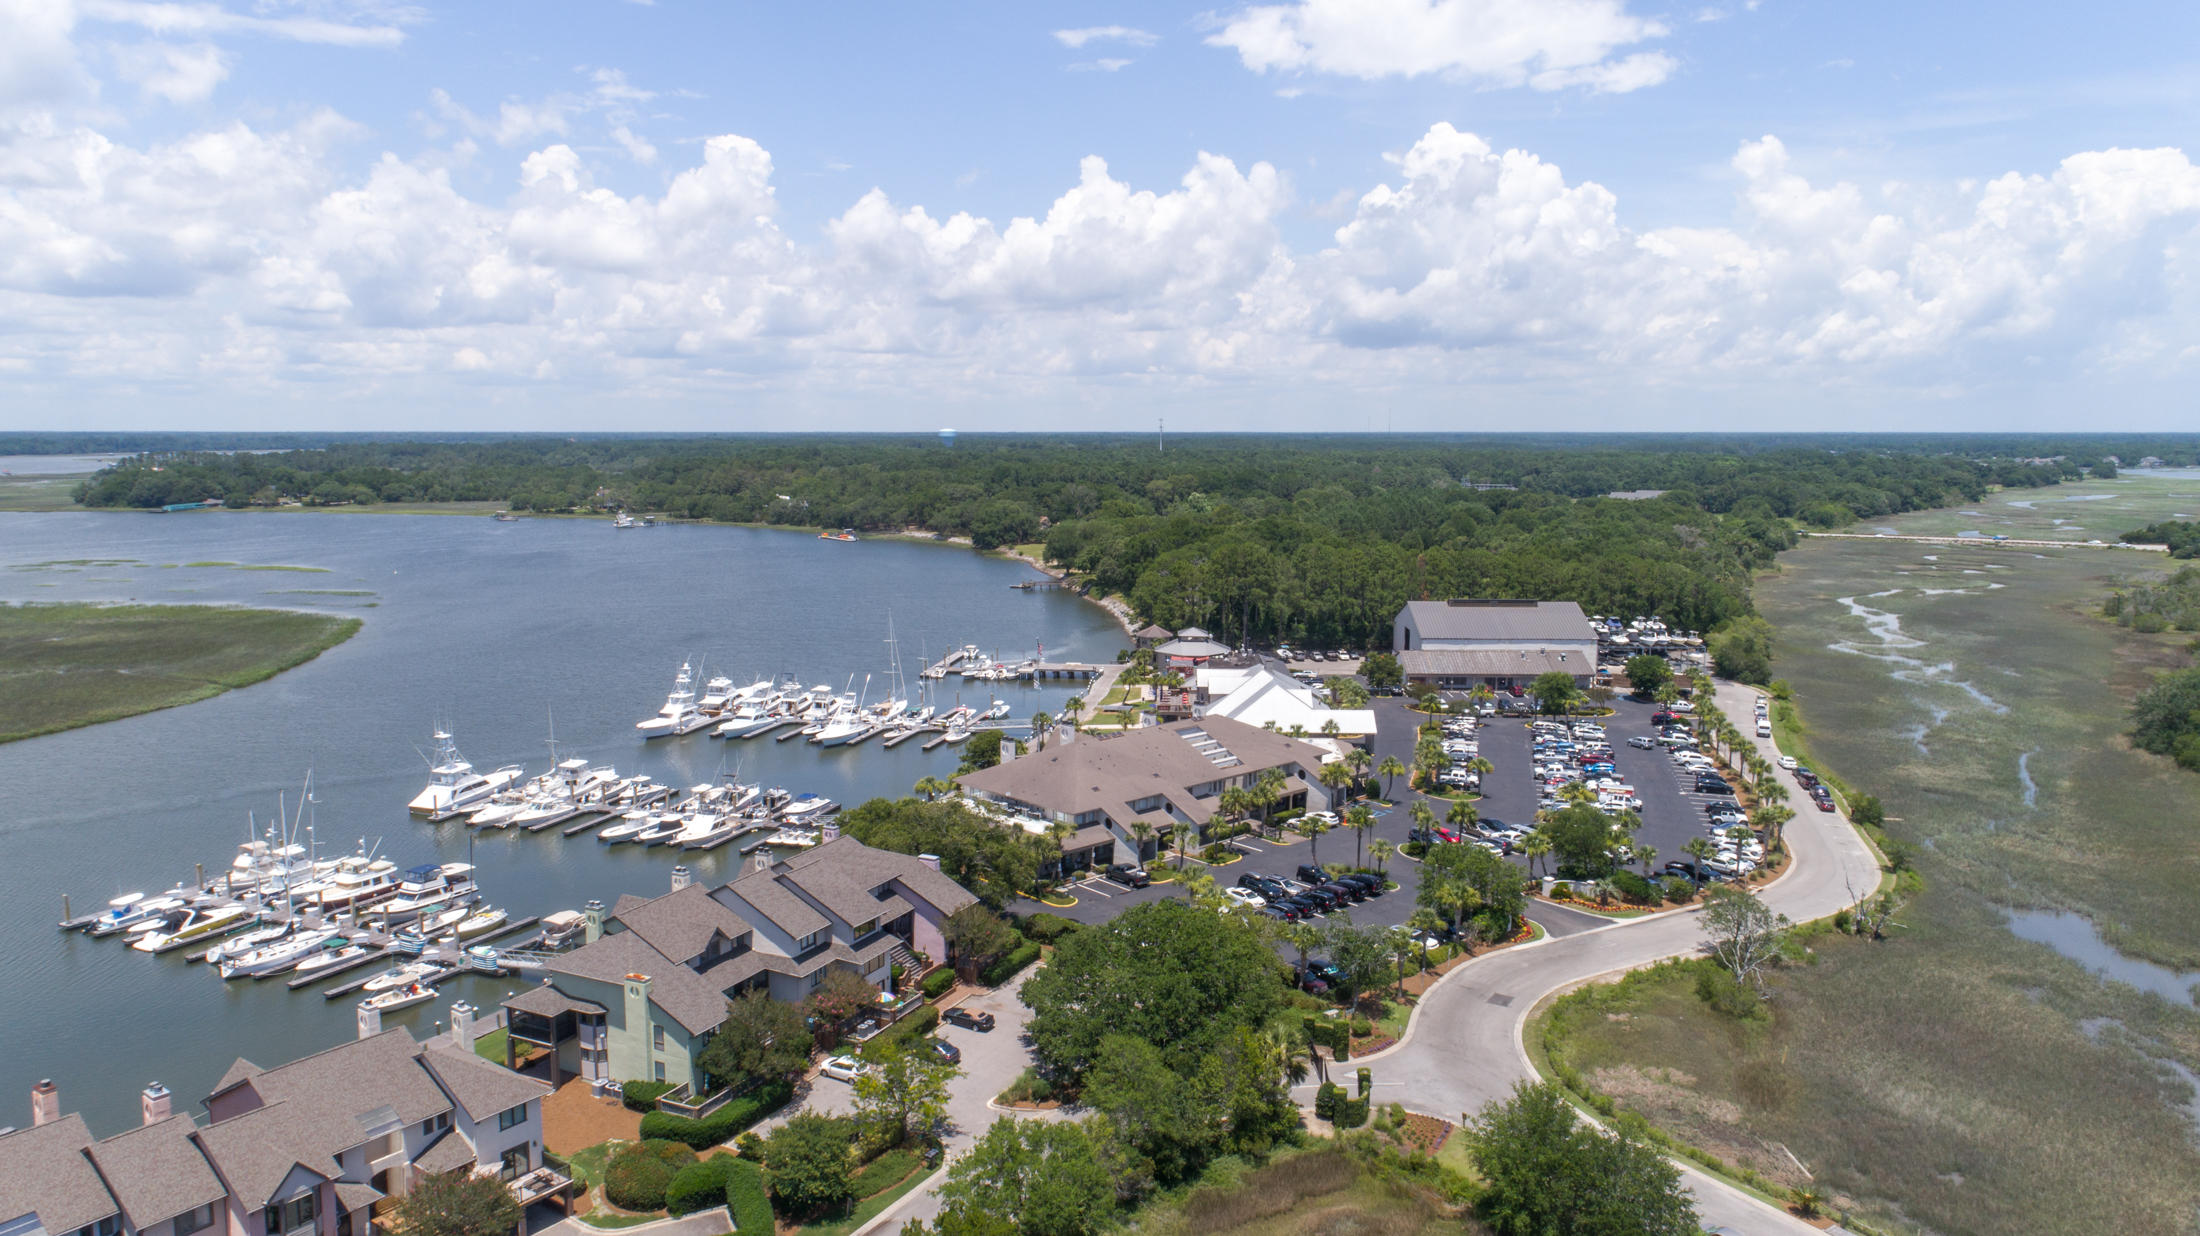 Seabrook Island Homes For Sale - 1880 Andell Bluff, Seabrook Island, SC - 8